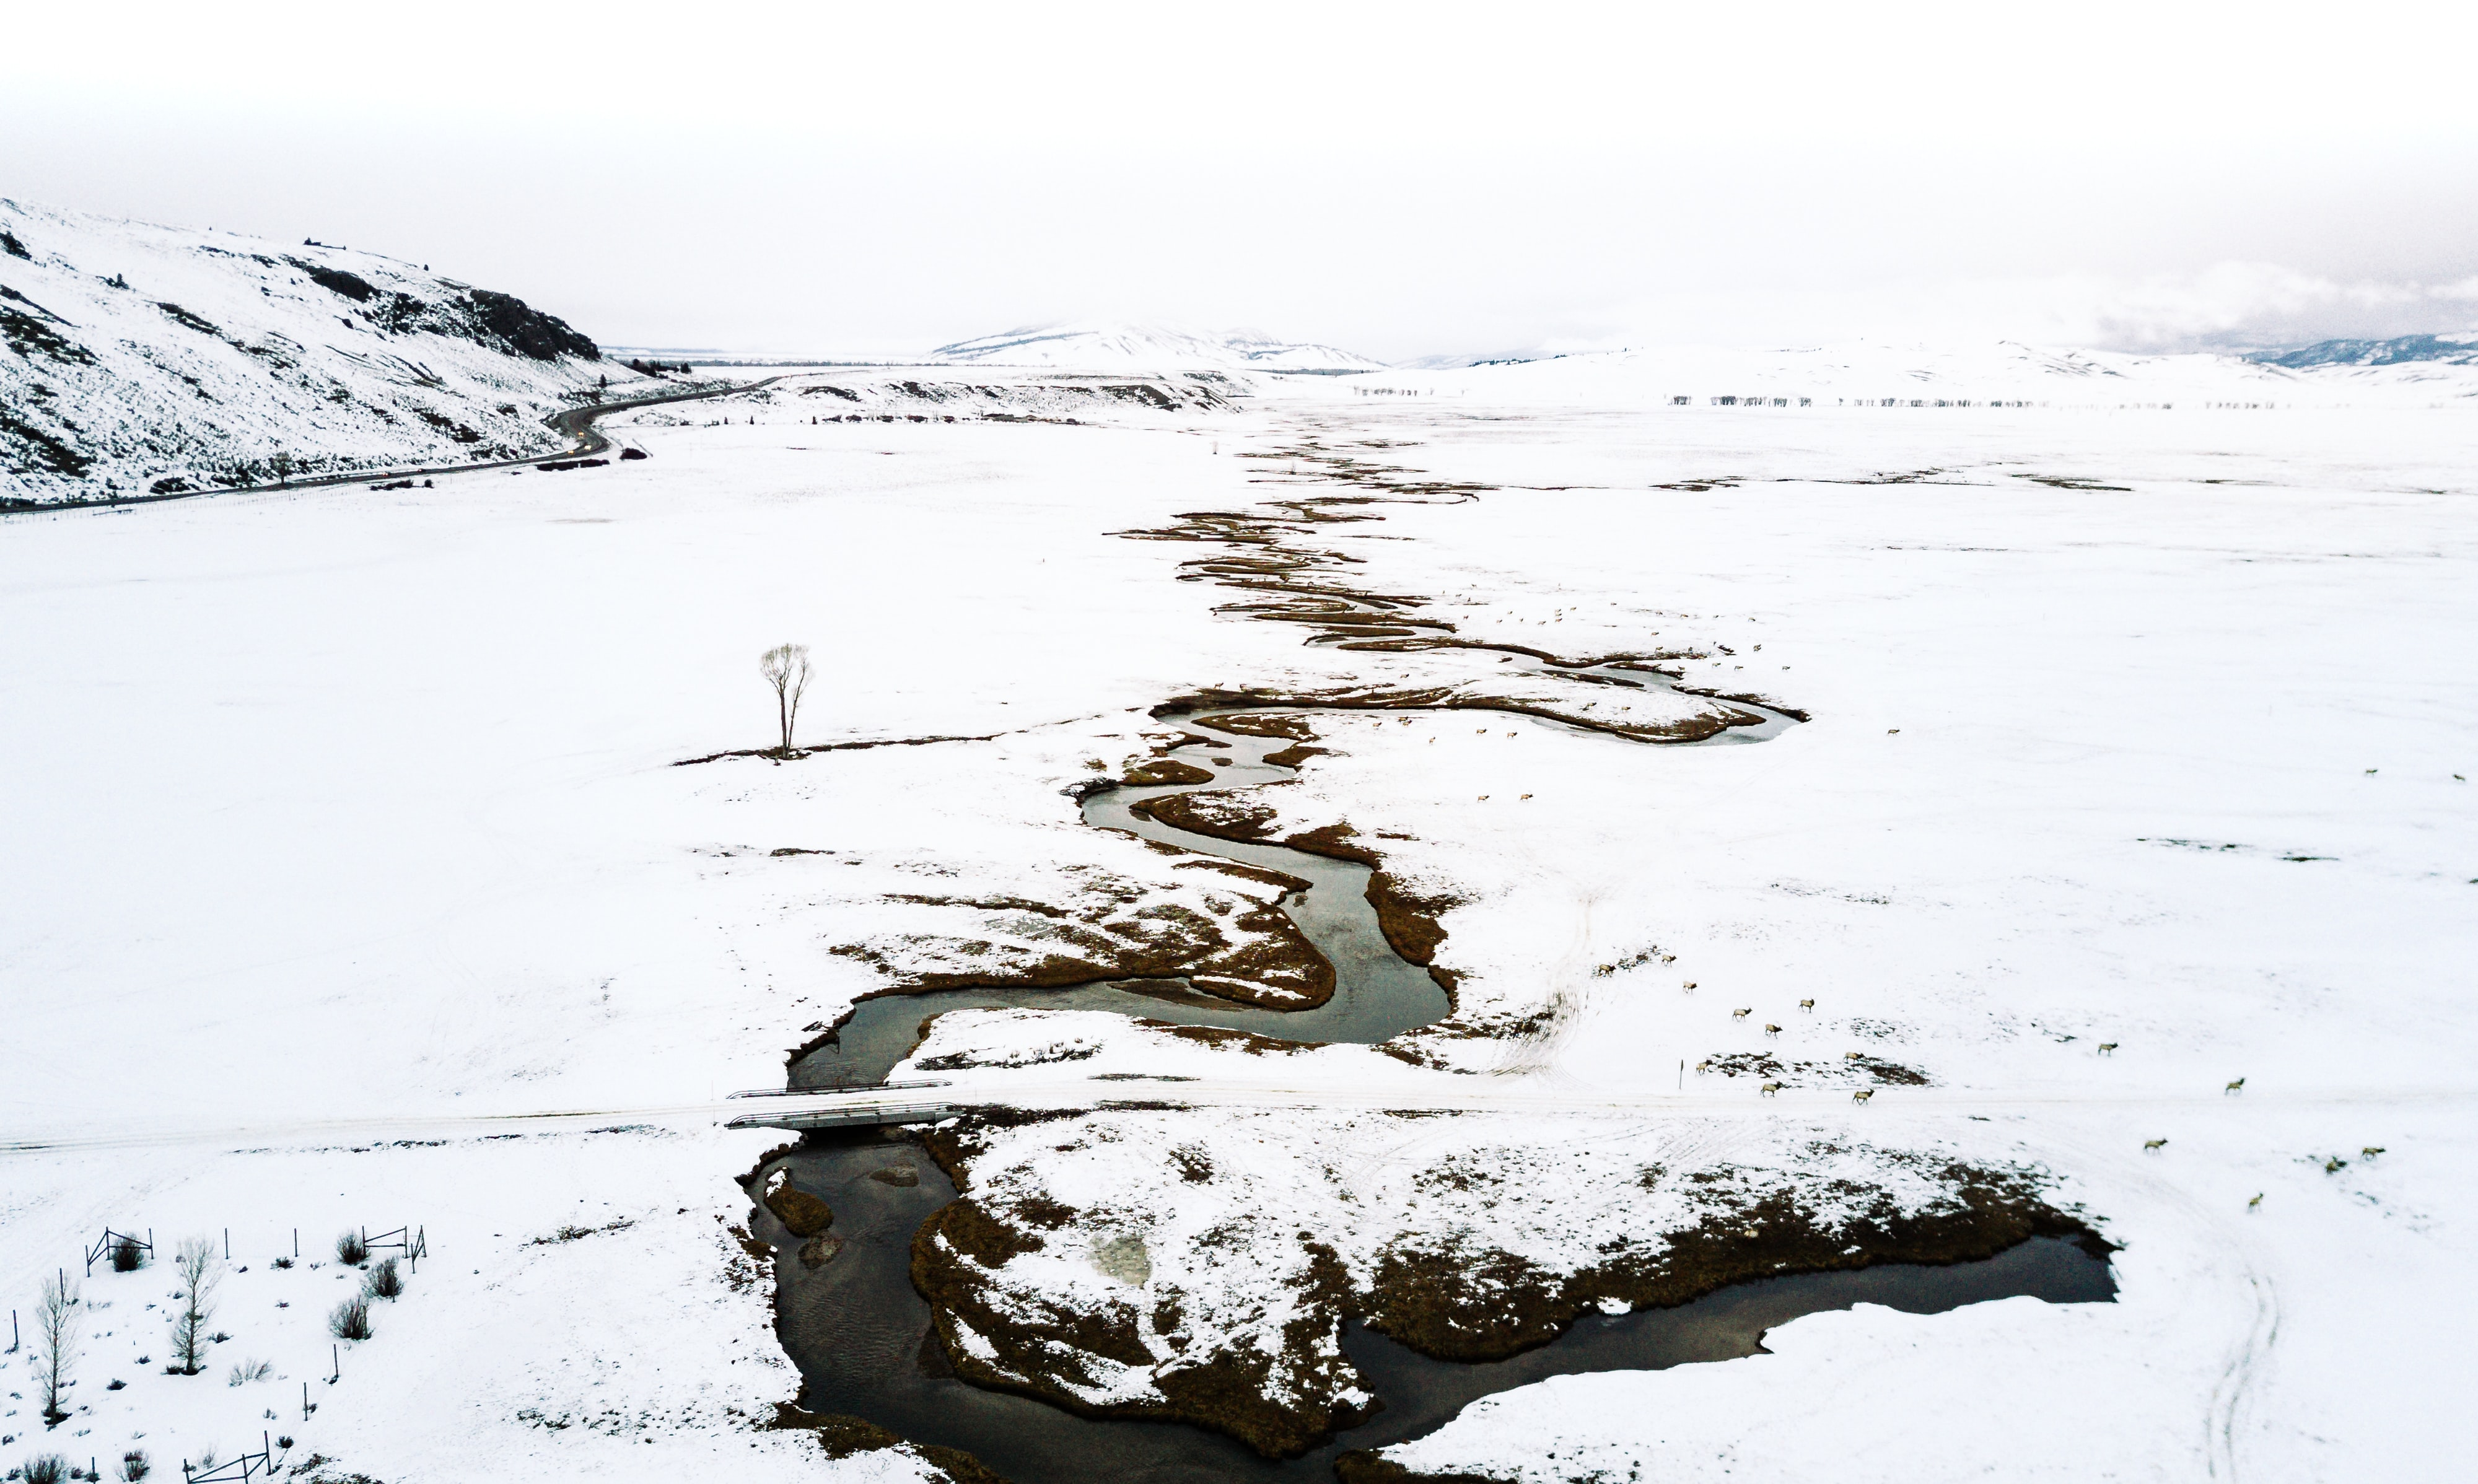 landscape photography of snow covered land